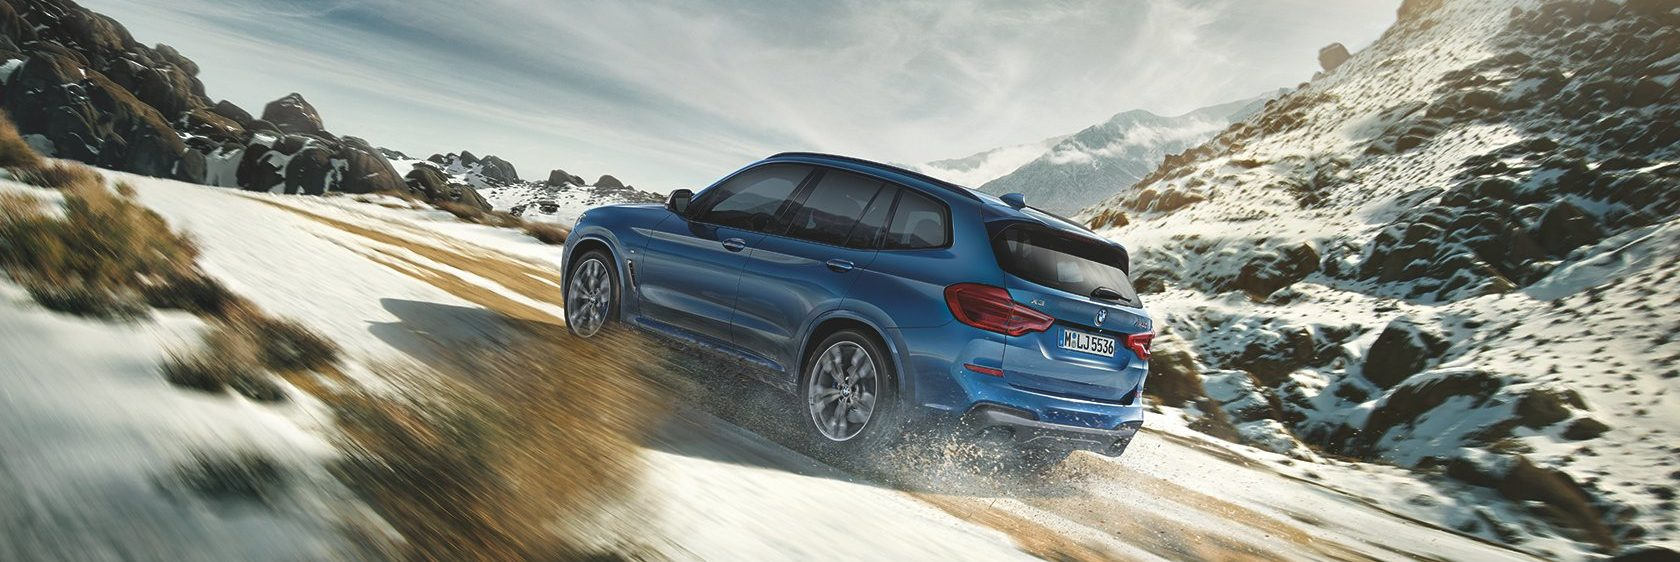 Must Have Winter Accessories for BMW SUVs